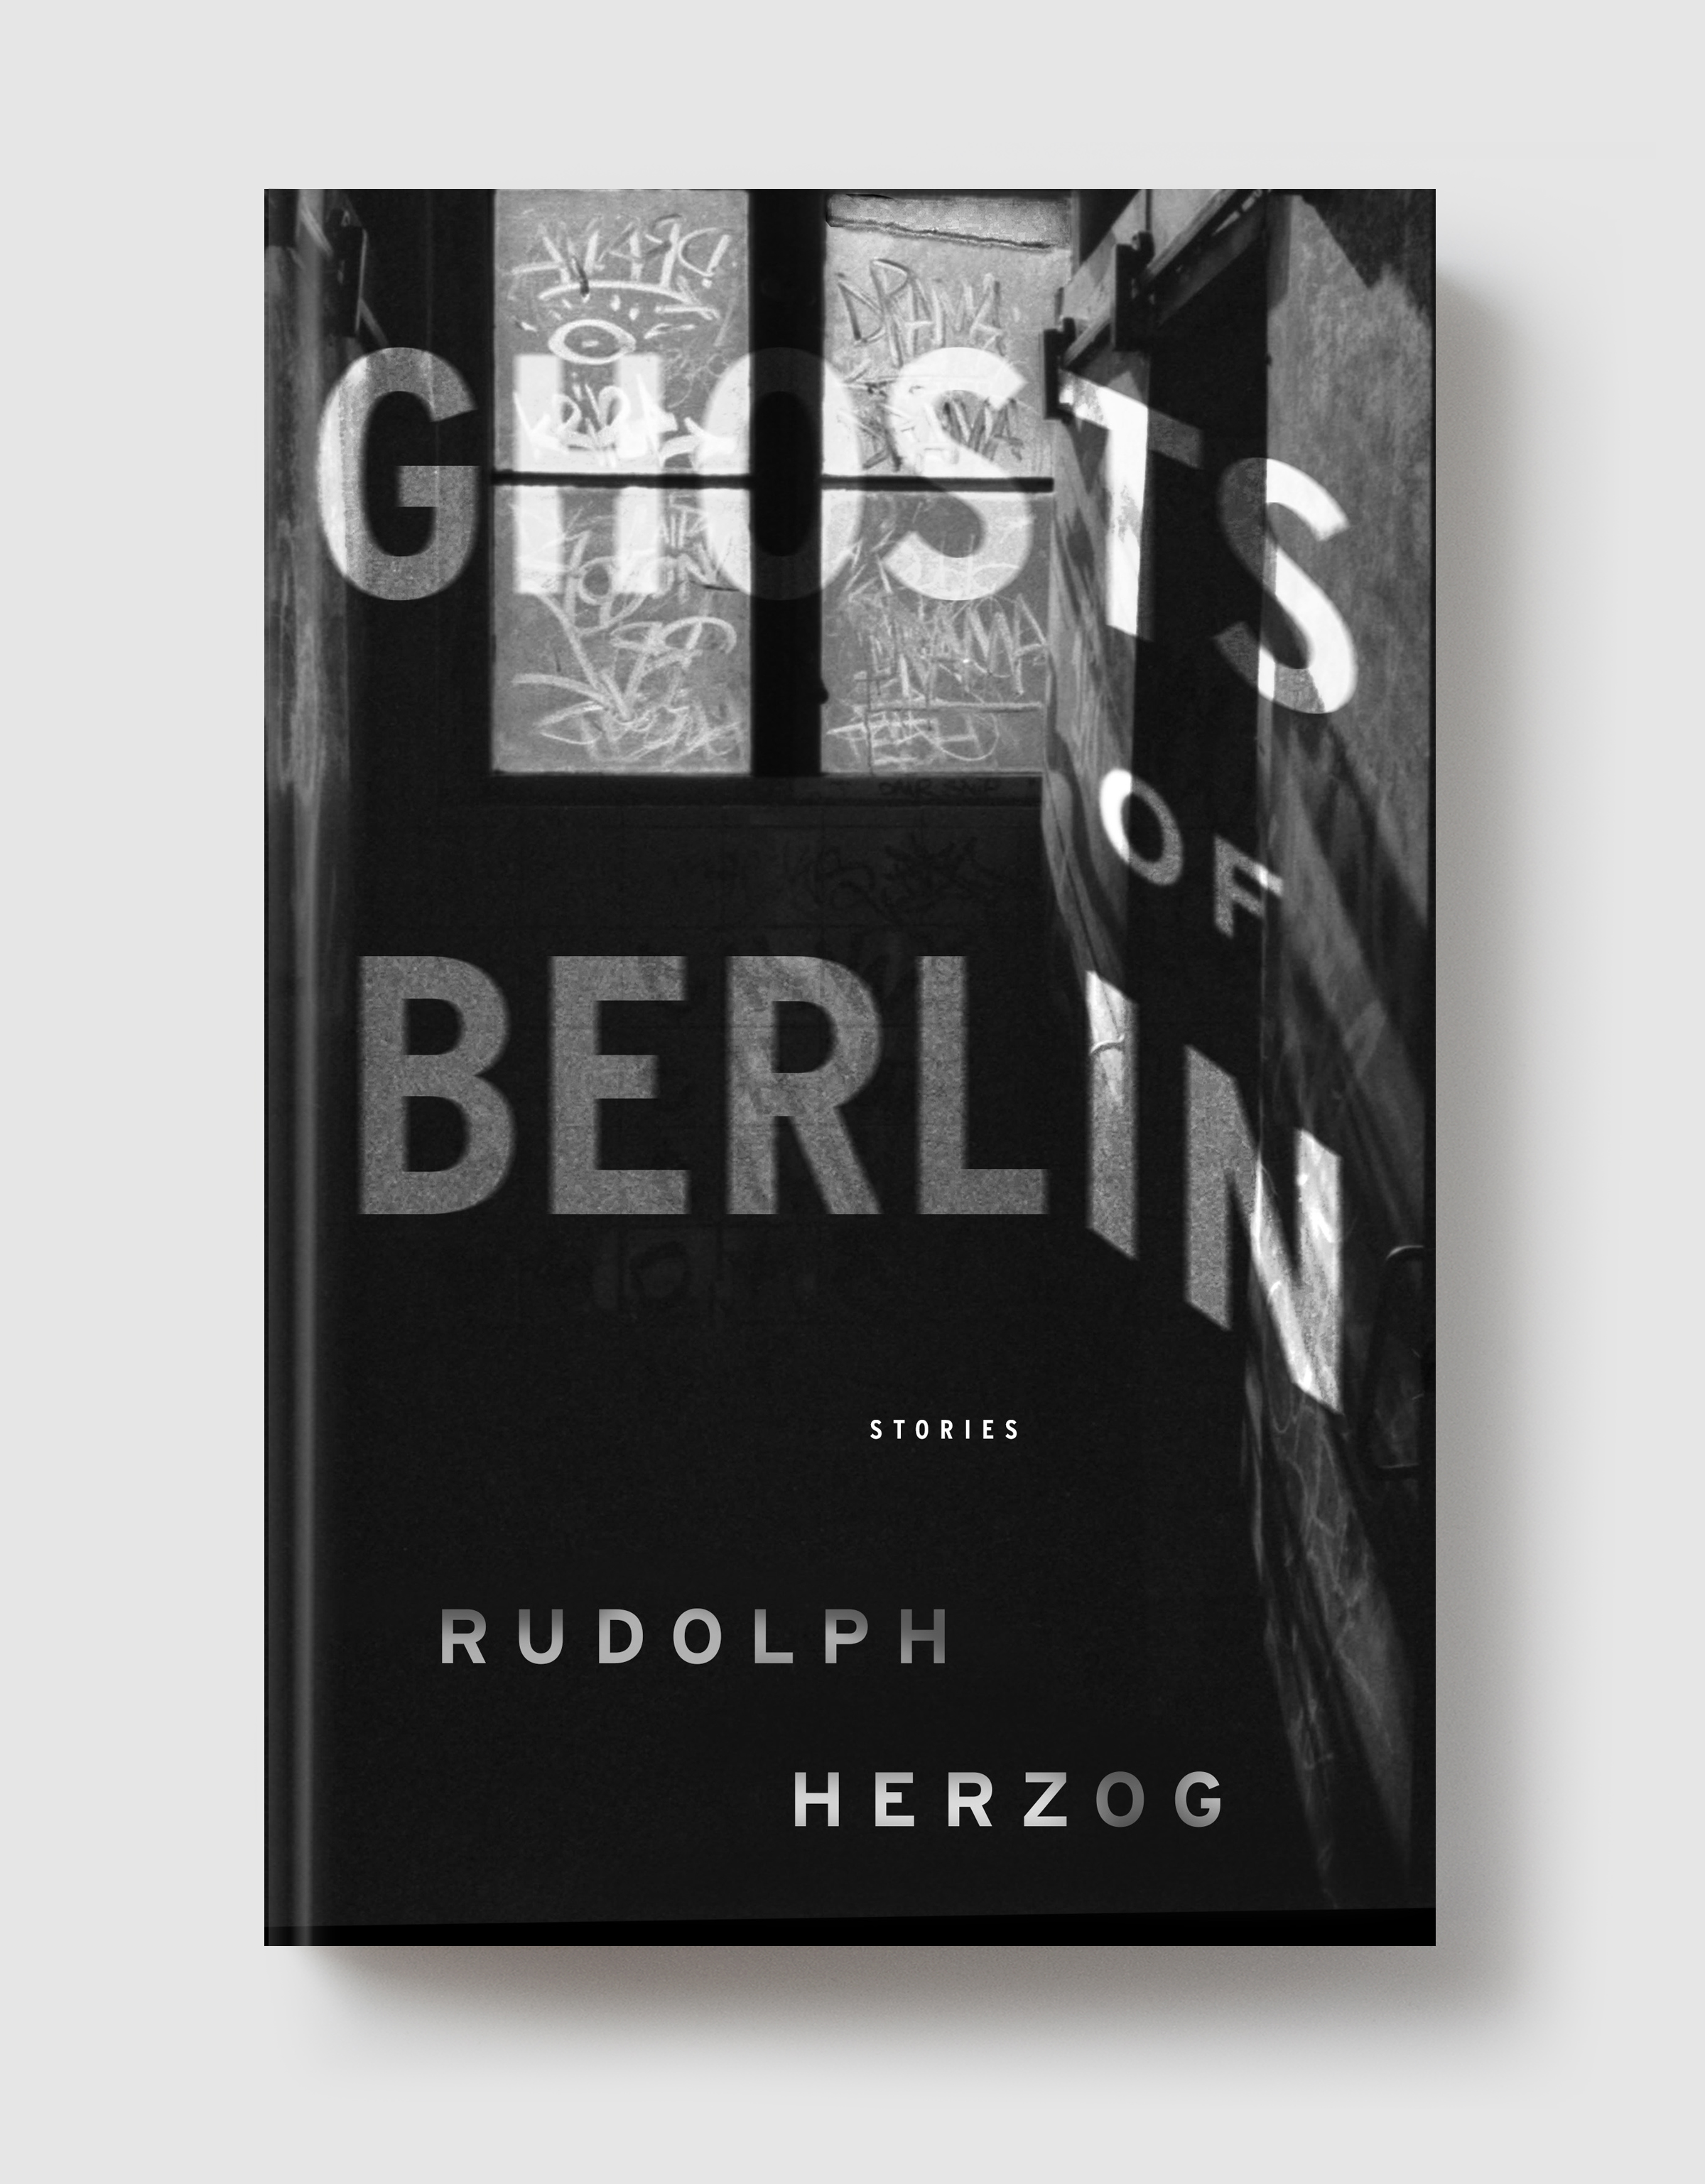 Rudolph Herzog has a new book and a new film, what about you?